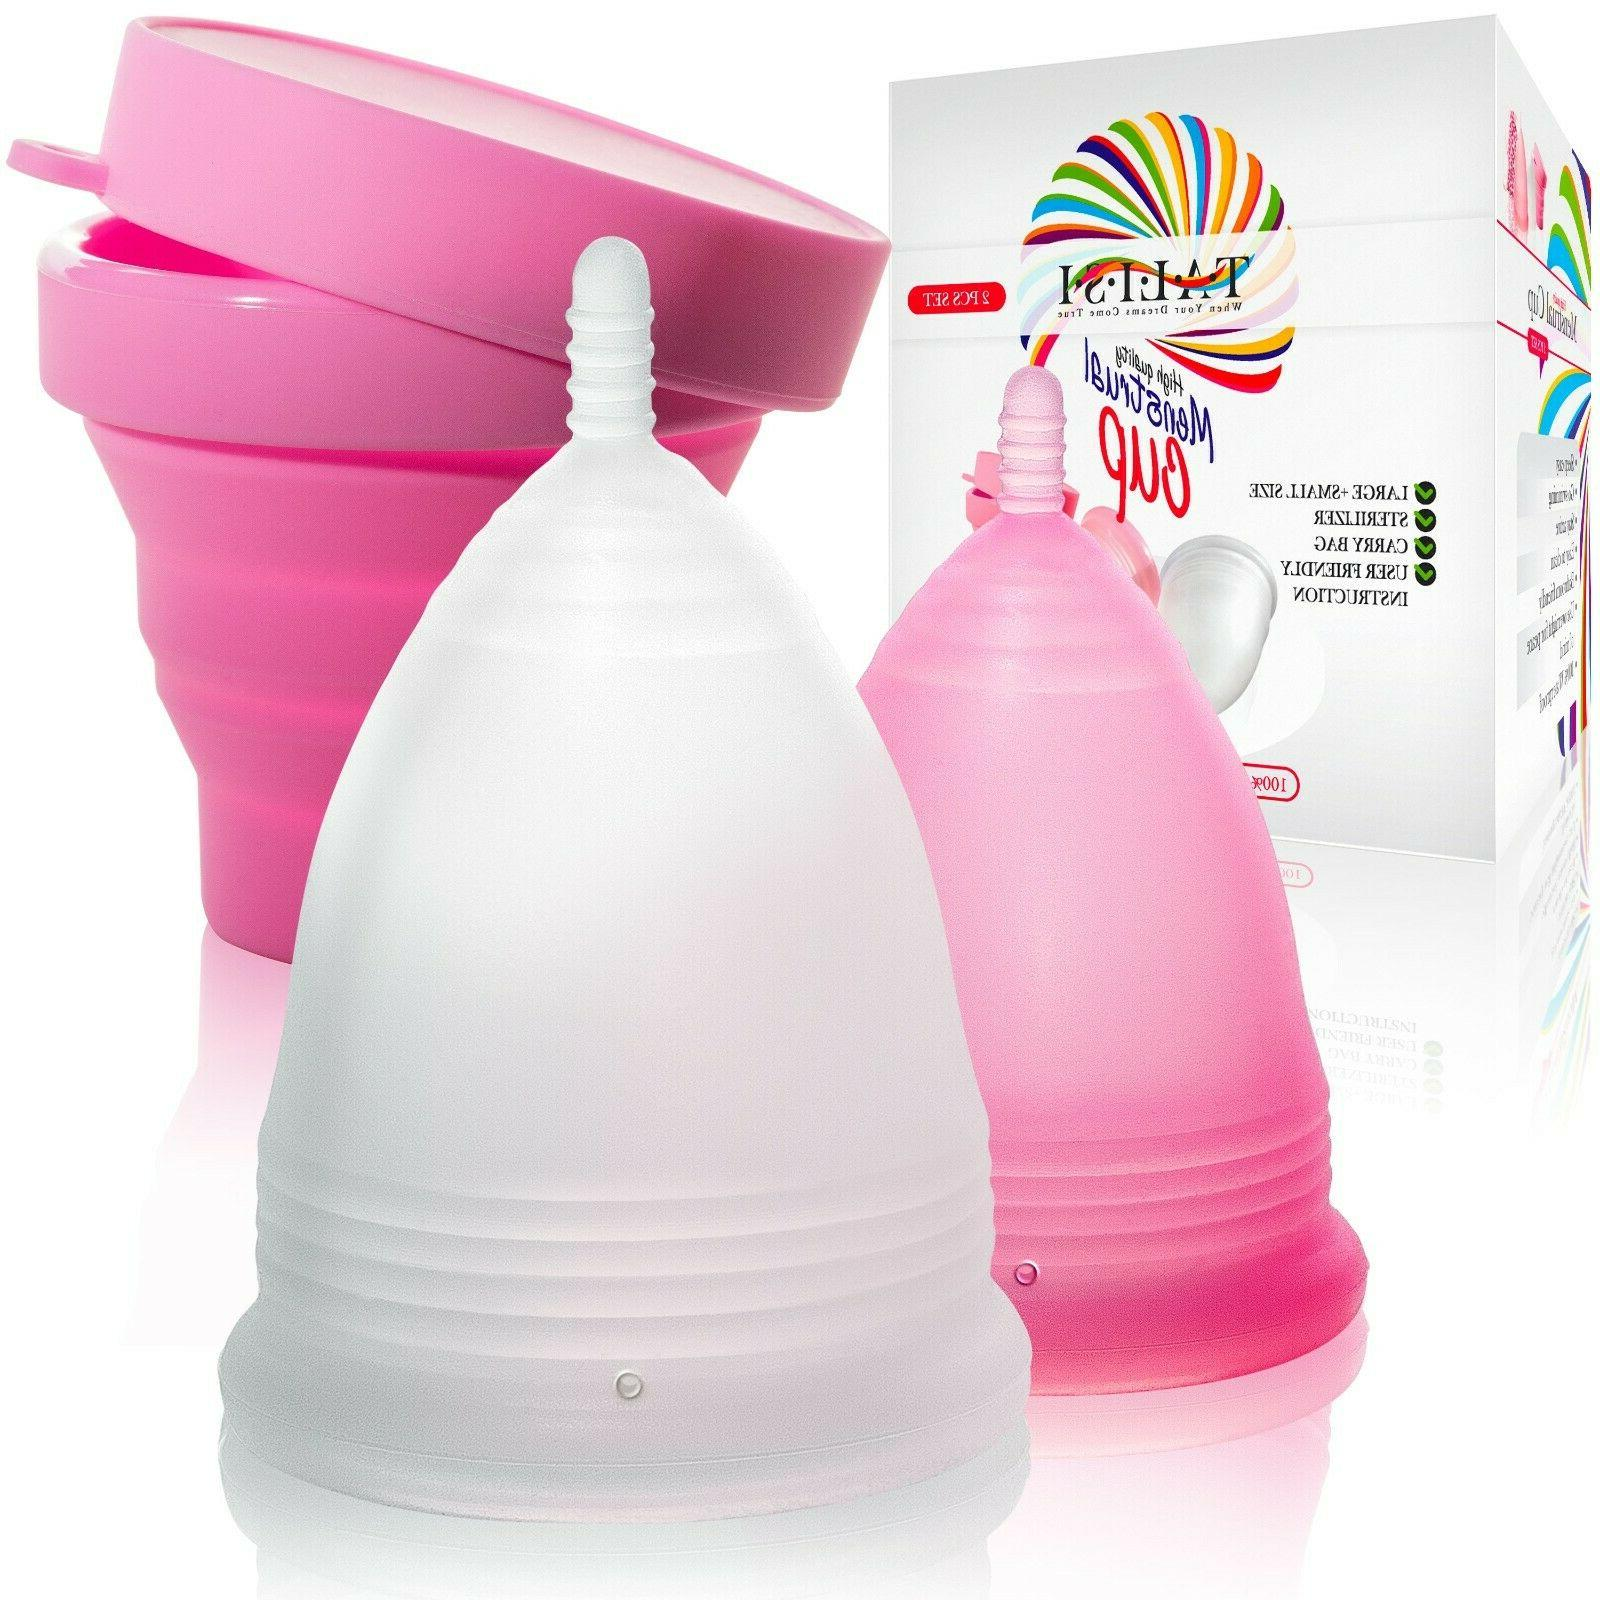 talisi menstrual cups with collapsible silicone foldable